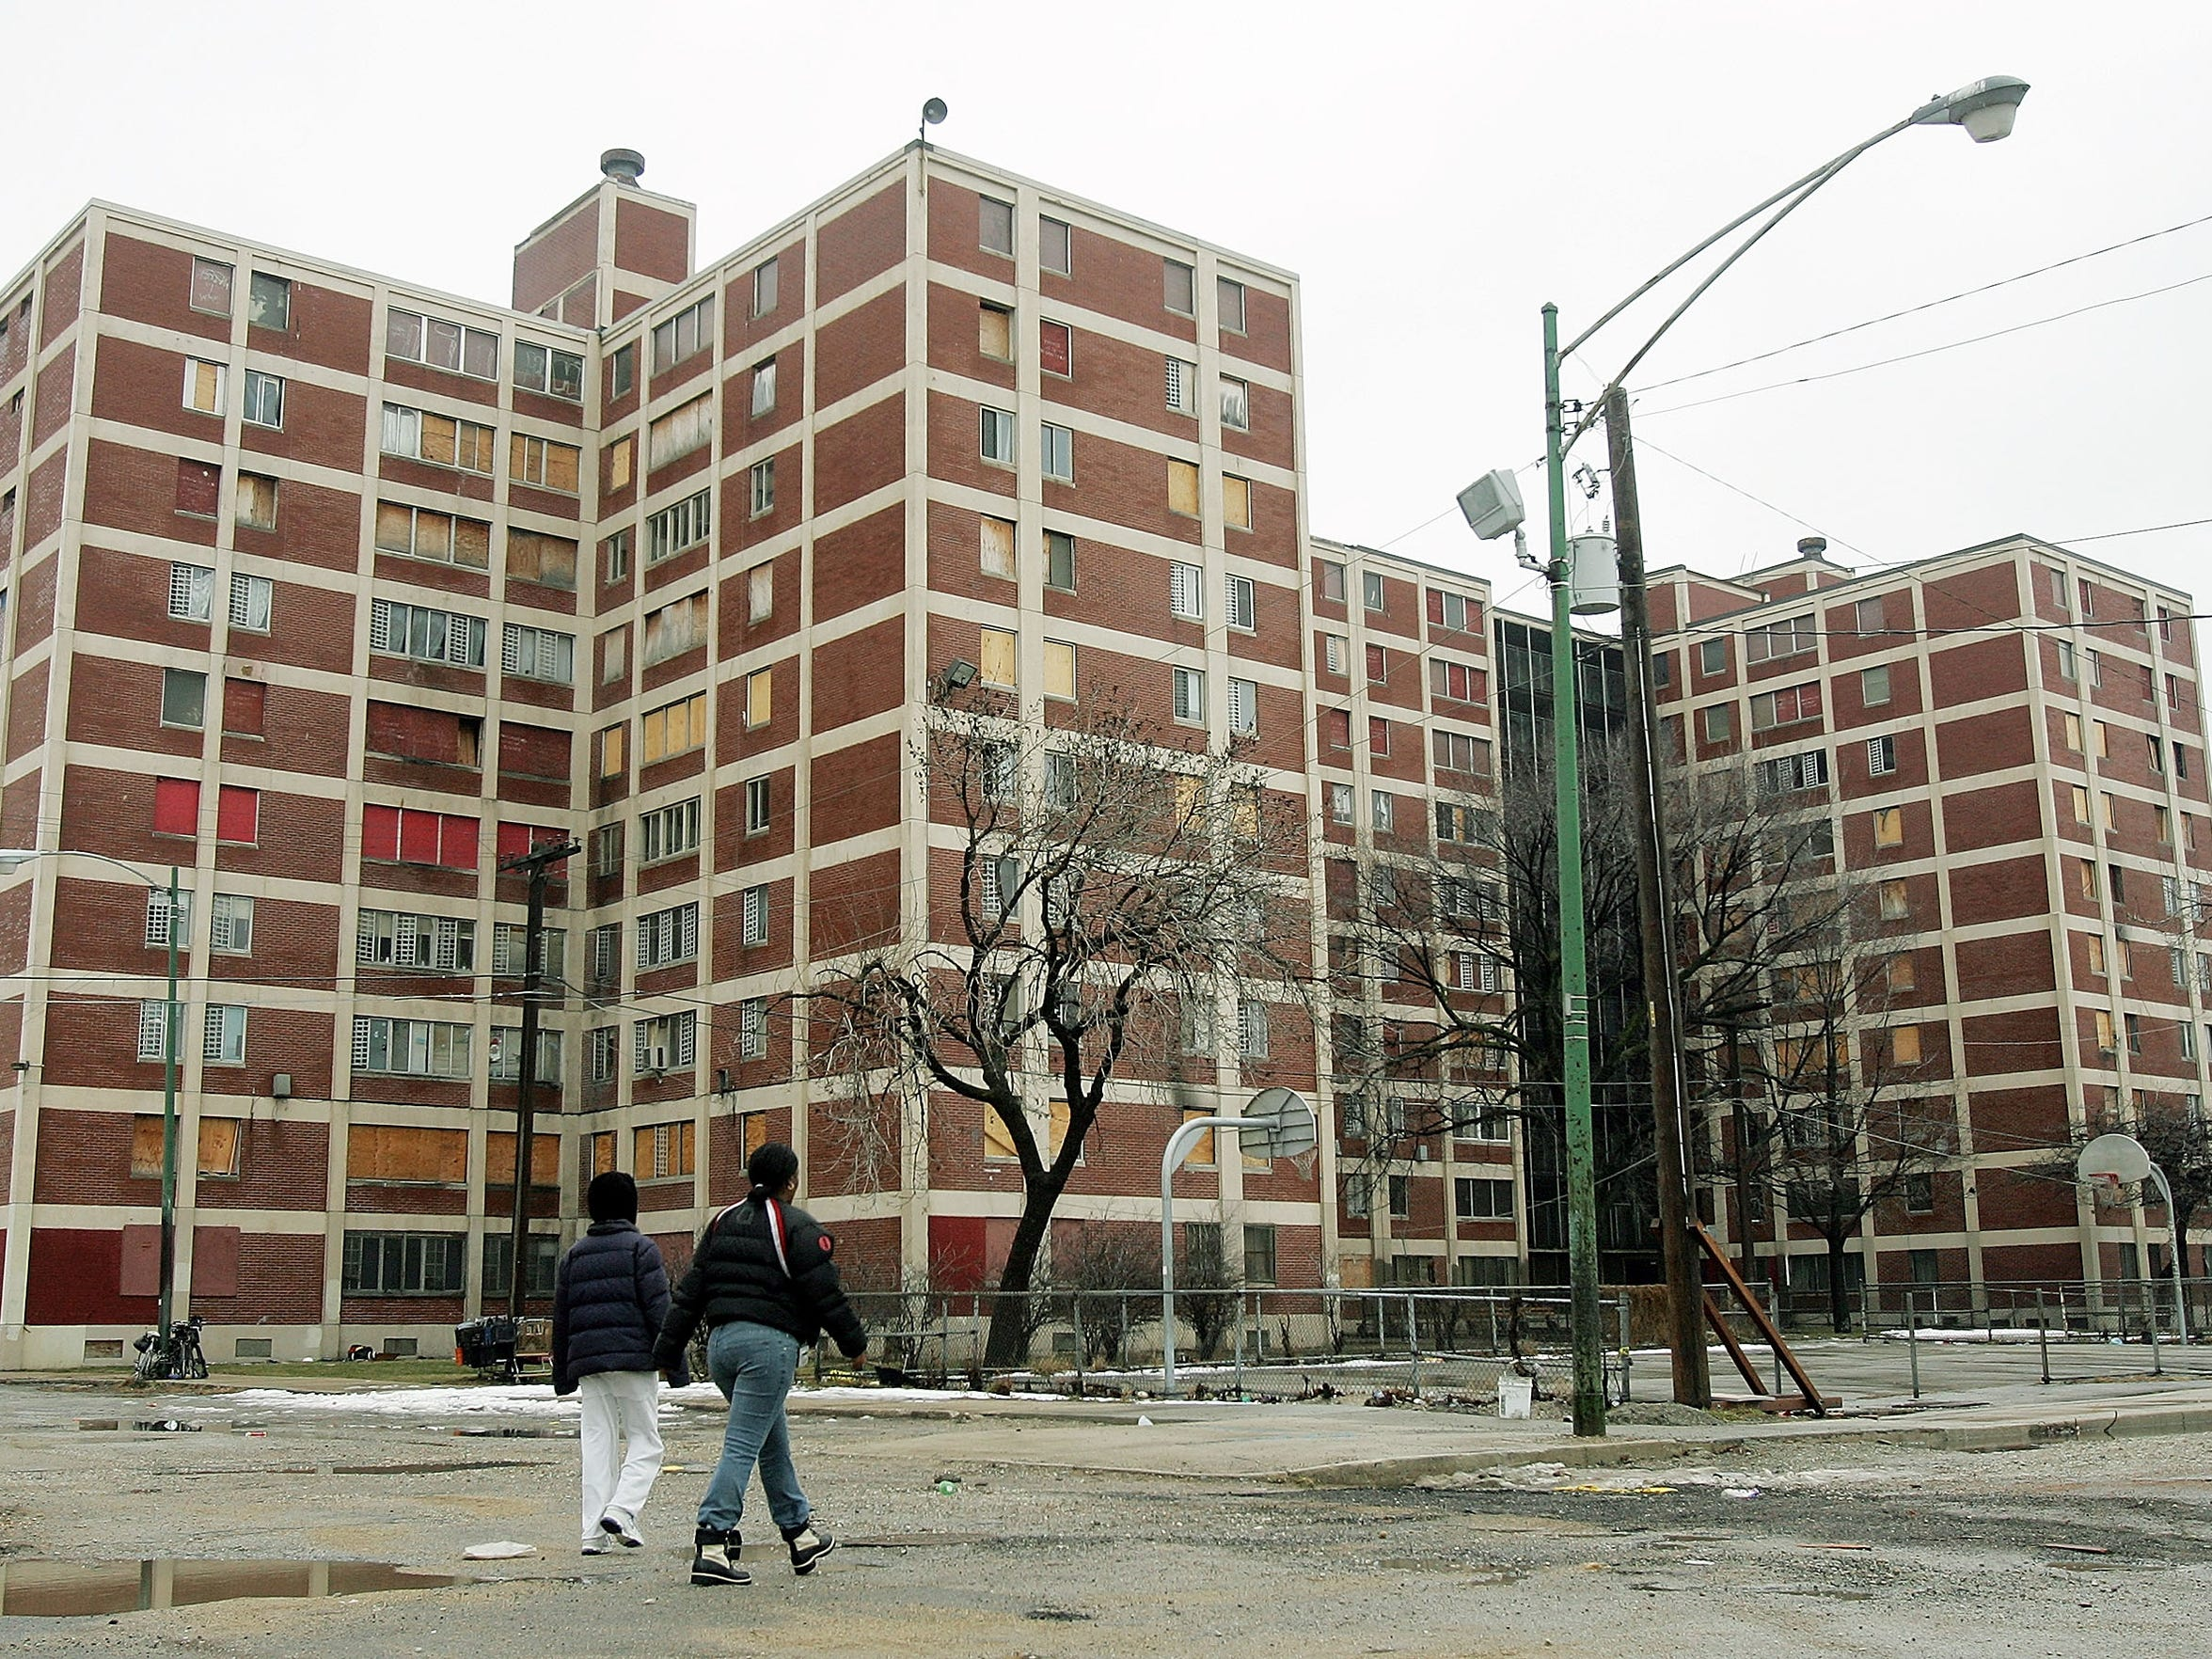 Part of the Chicago Housing Authority's Cabrini-Green